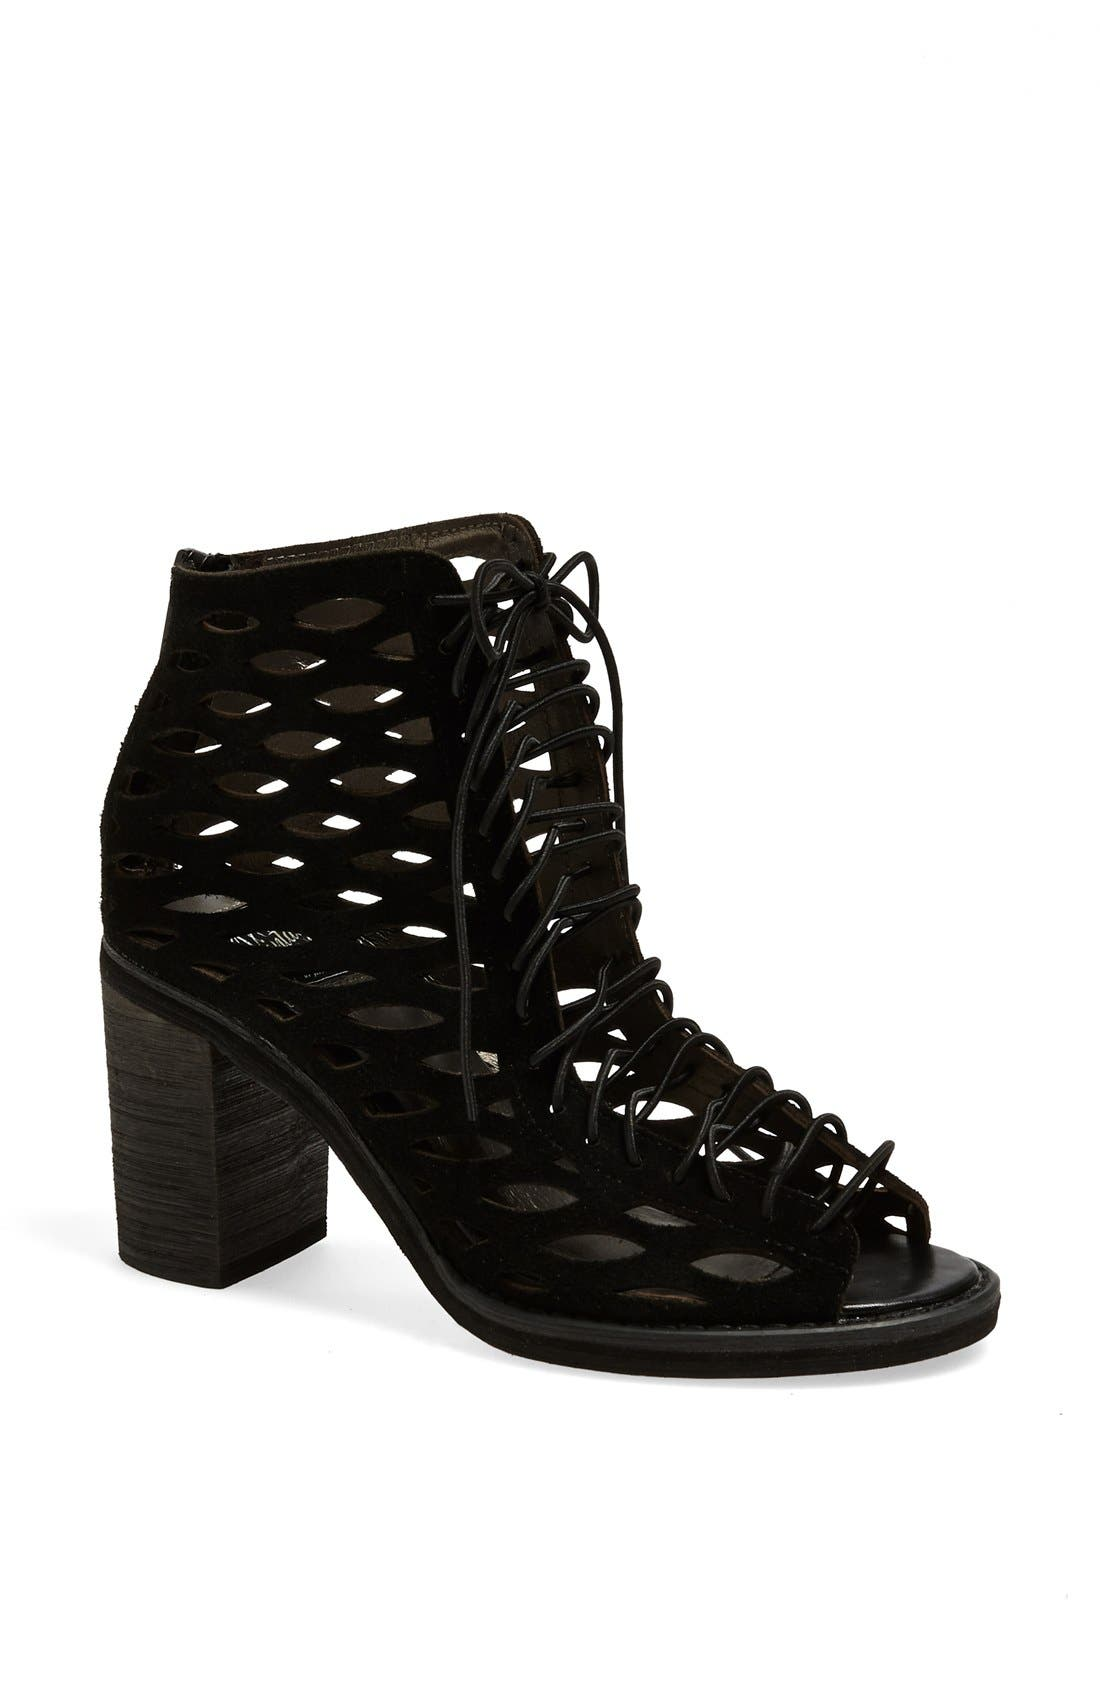 Alternate Image 1 Selected - Jeffrey Campbell 'Cors' Bootie